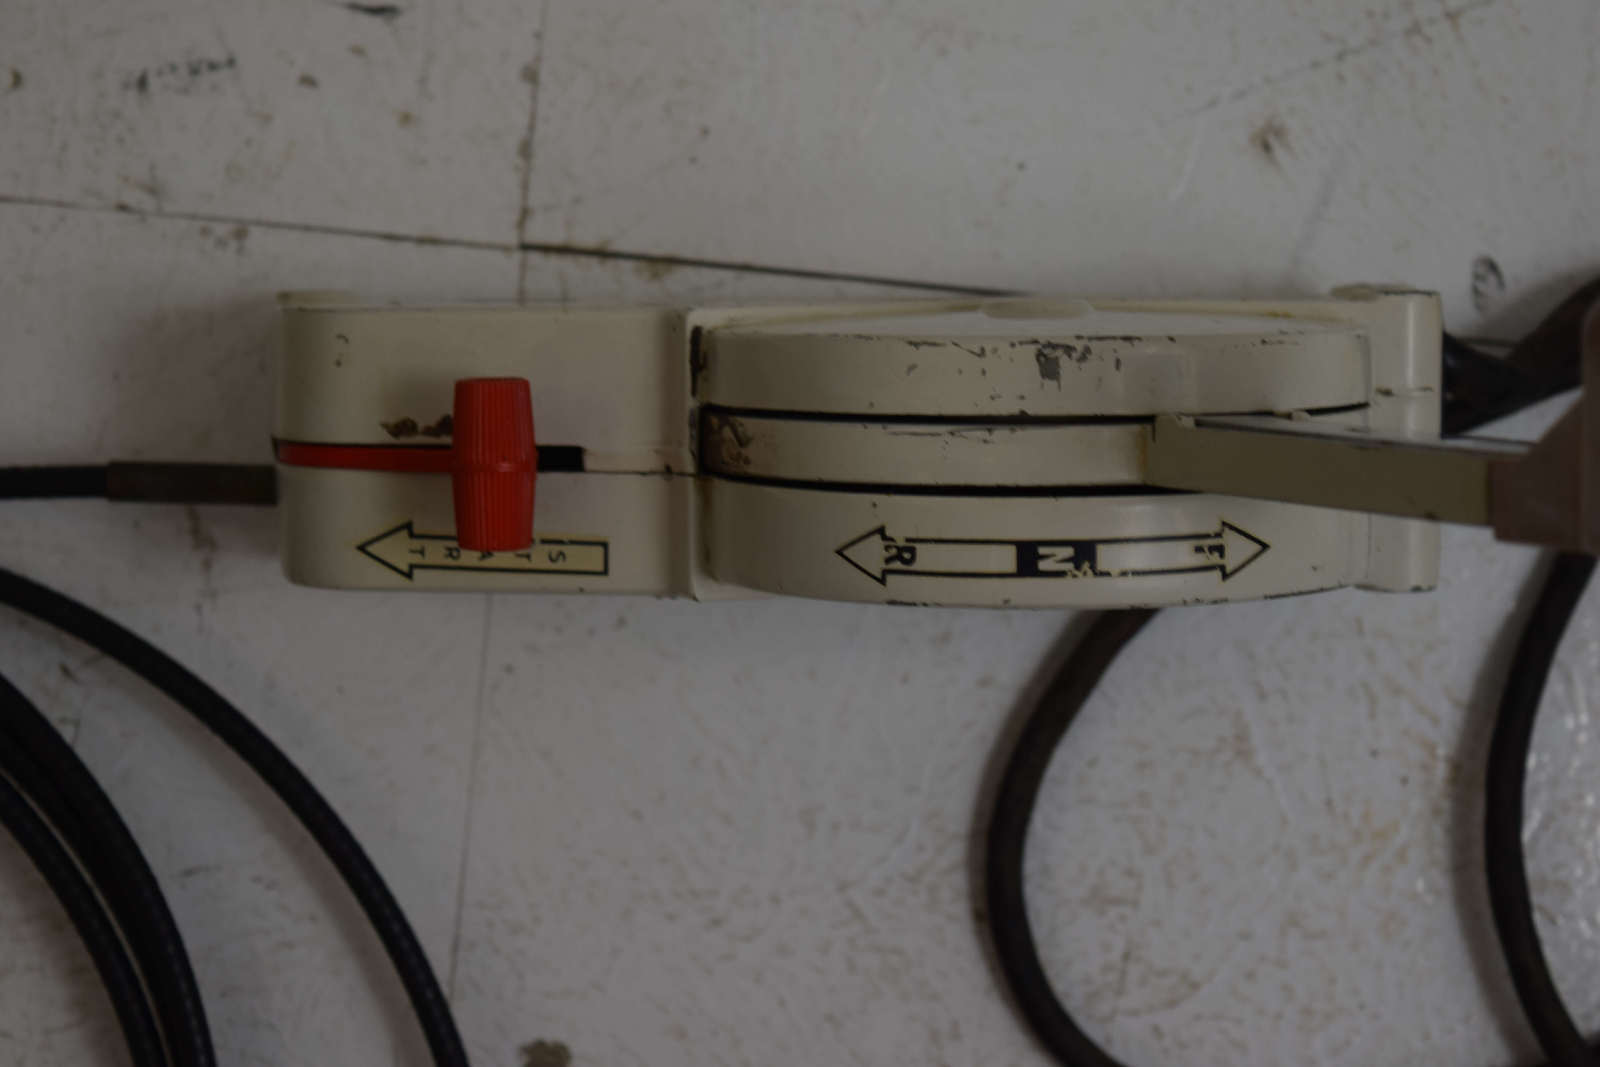 hight resolution of  1960 s omc stringer shift elect side mount control box w 16 ft cables 380505